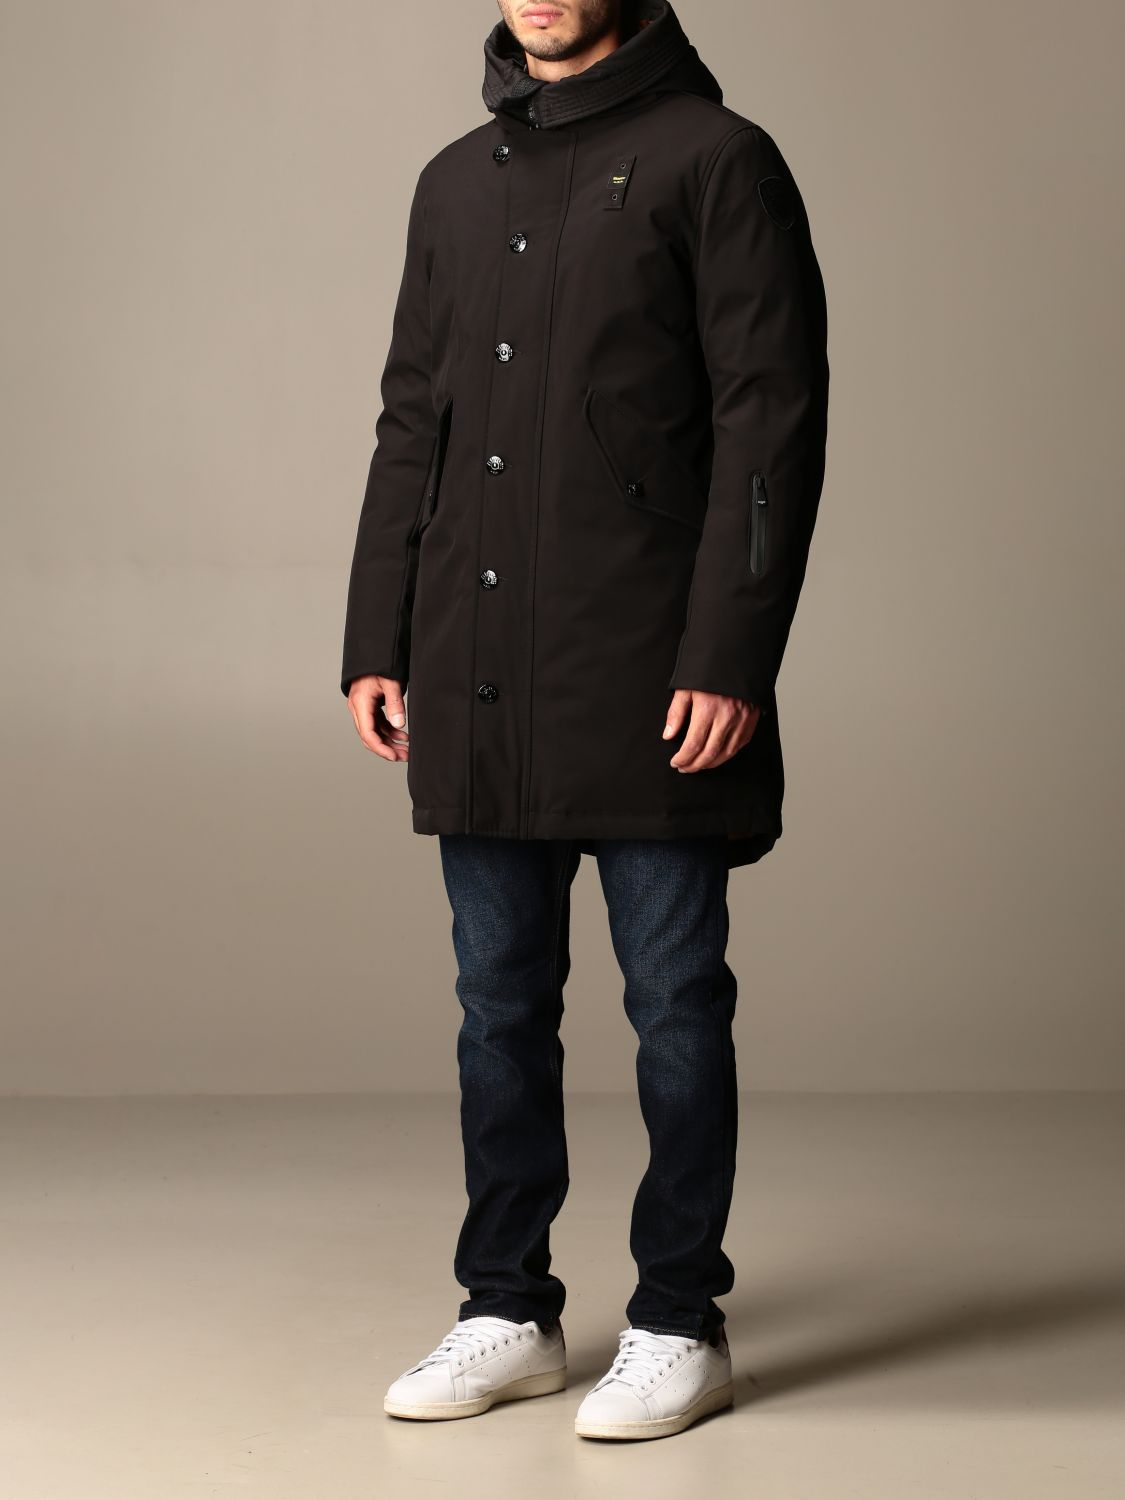 Jacket Blauer: Coat men Blauer black 3